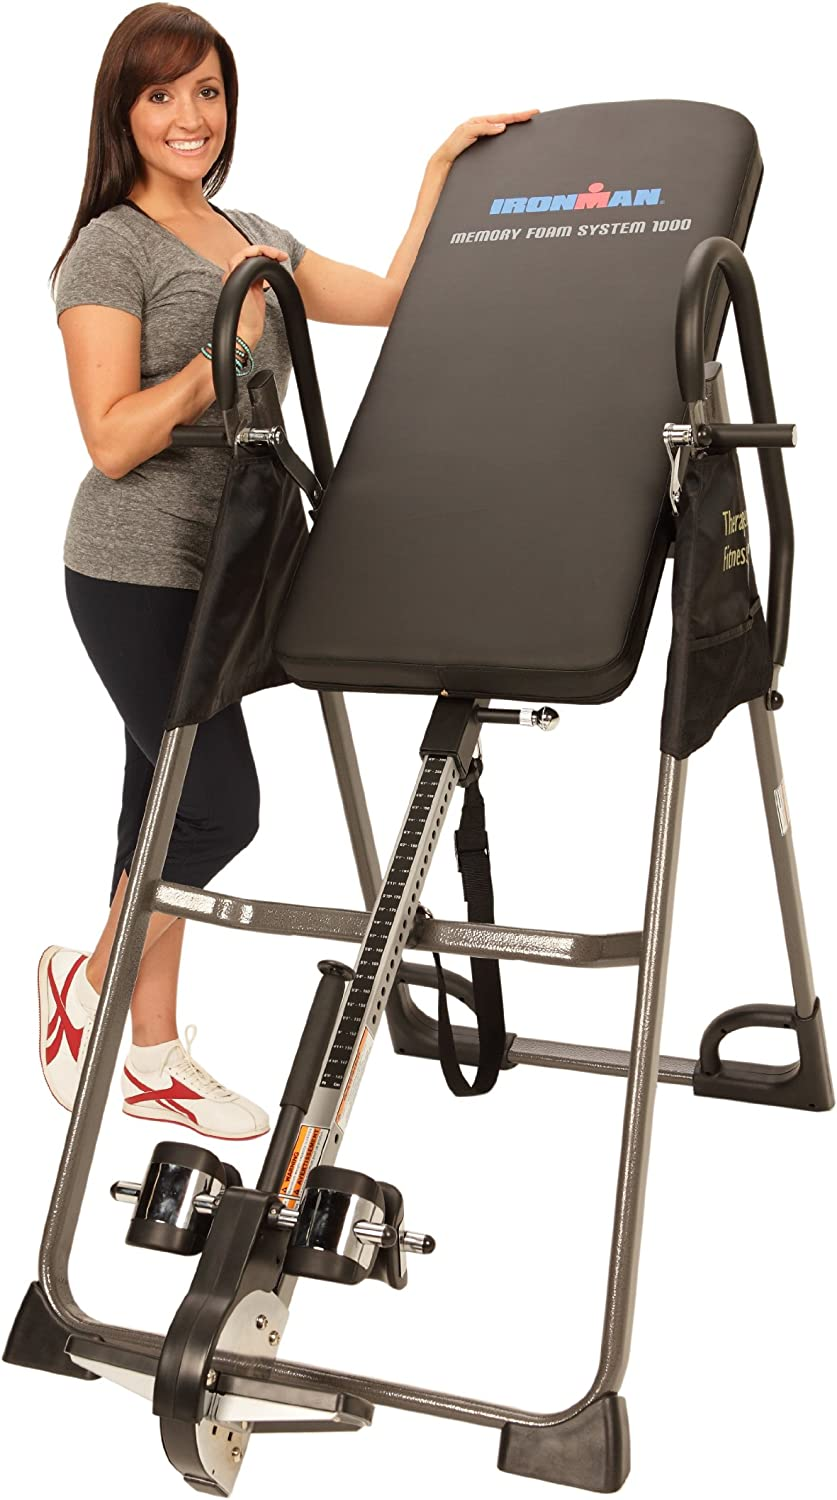 Ironman High Capacity Memory Foam Inversion Table